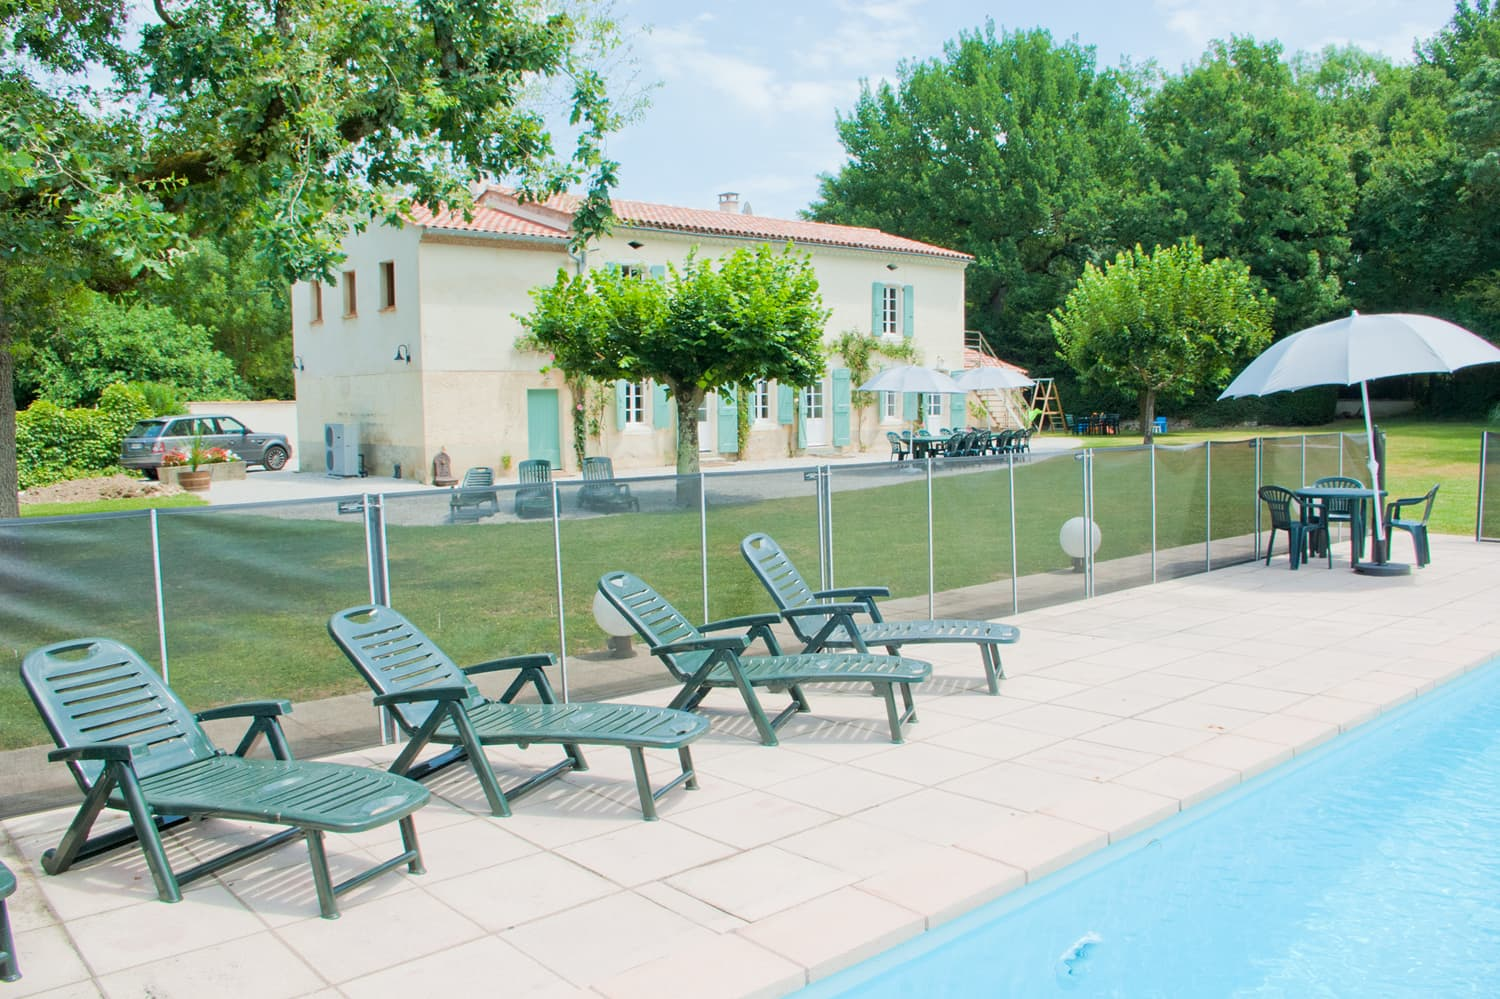 Holiday accommodation in South West France with private, heated pool